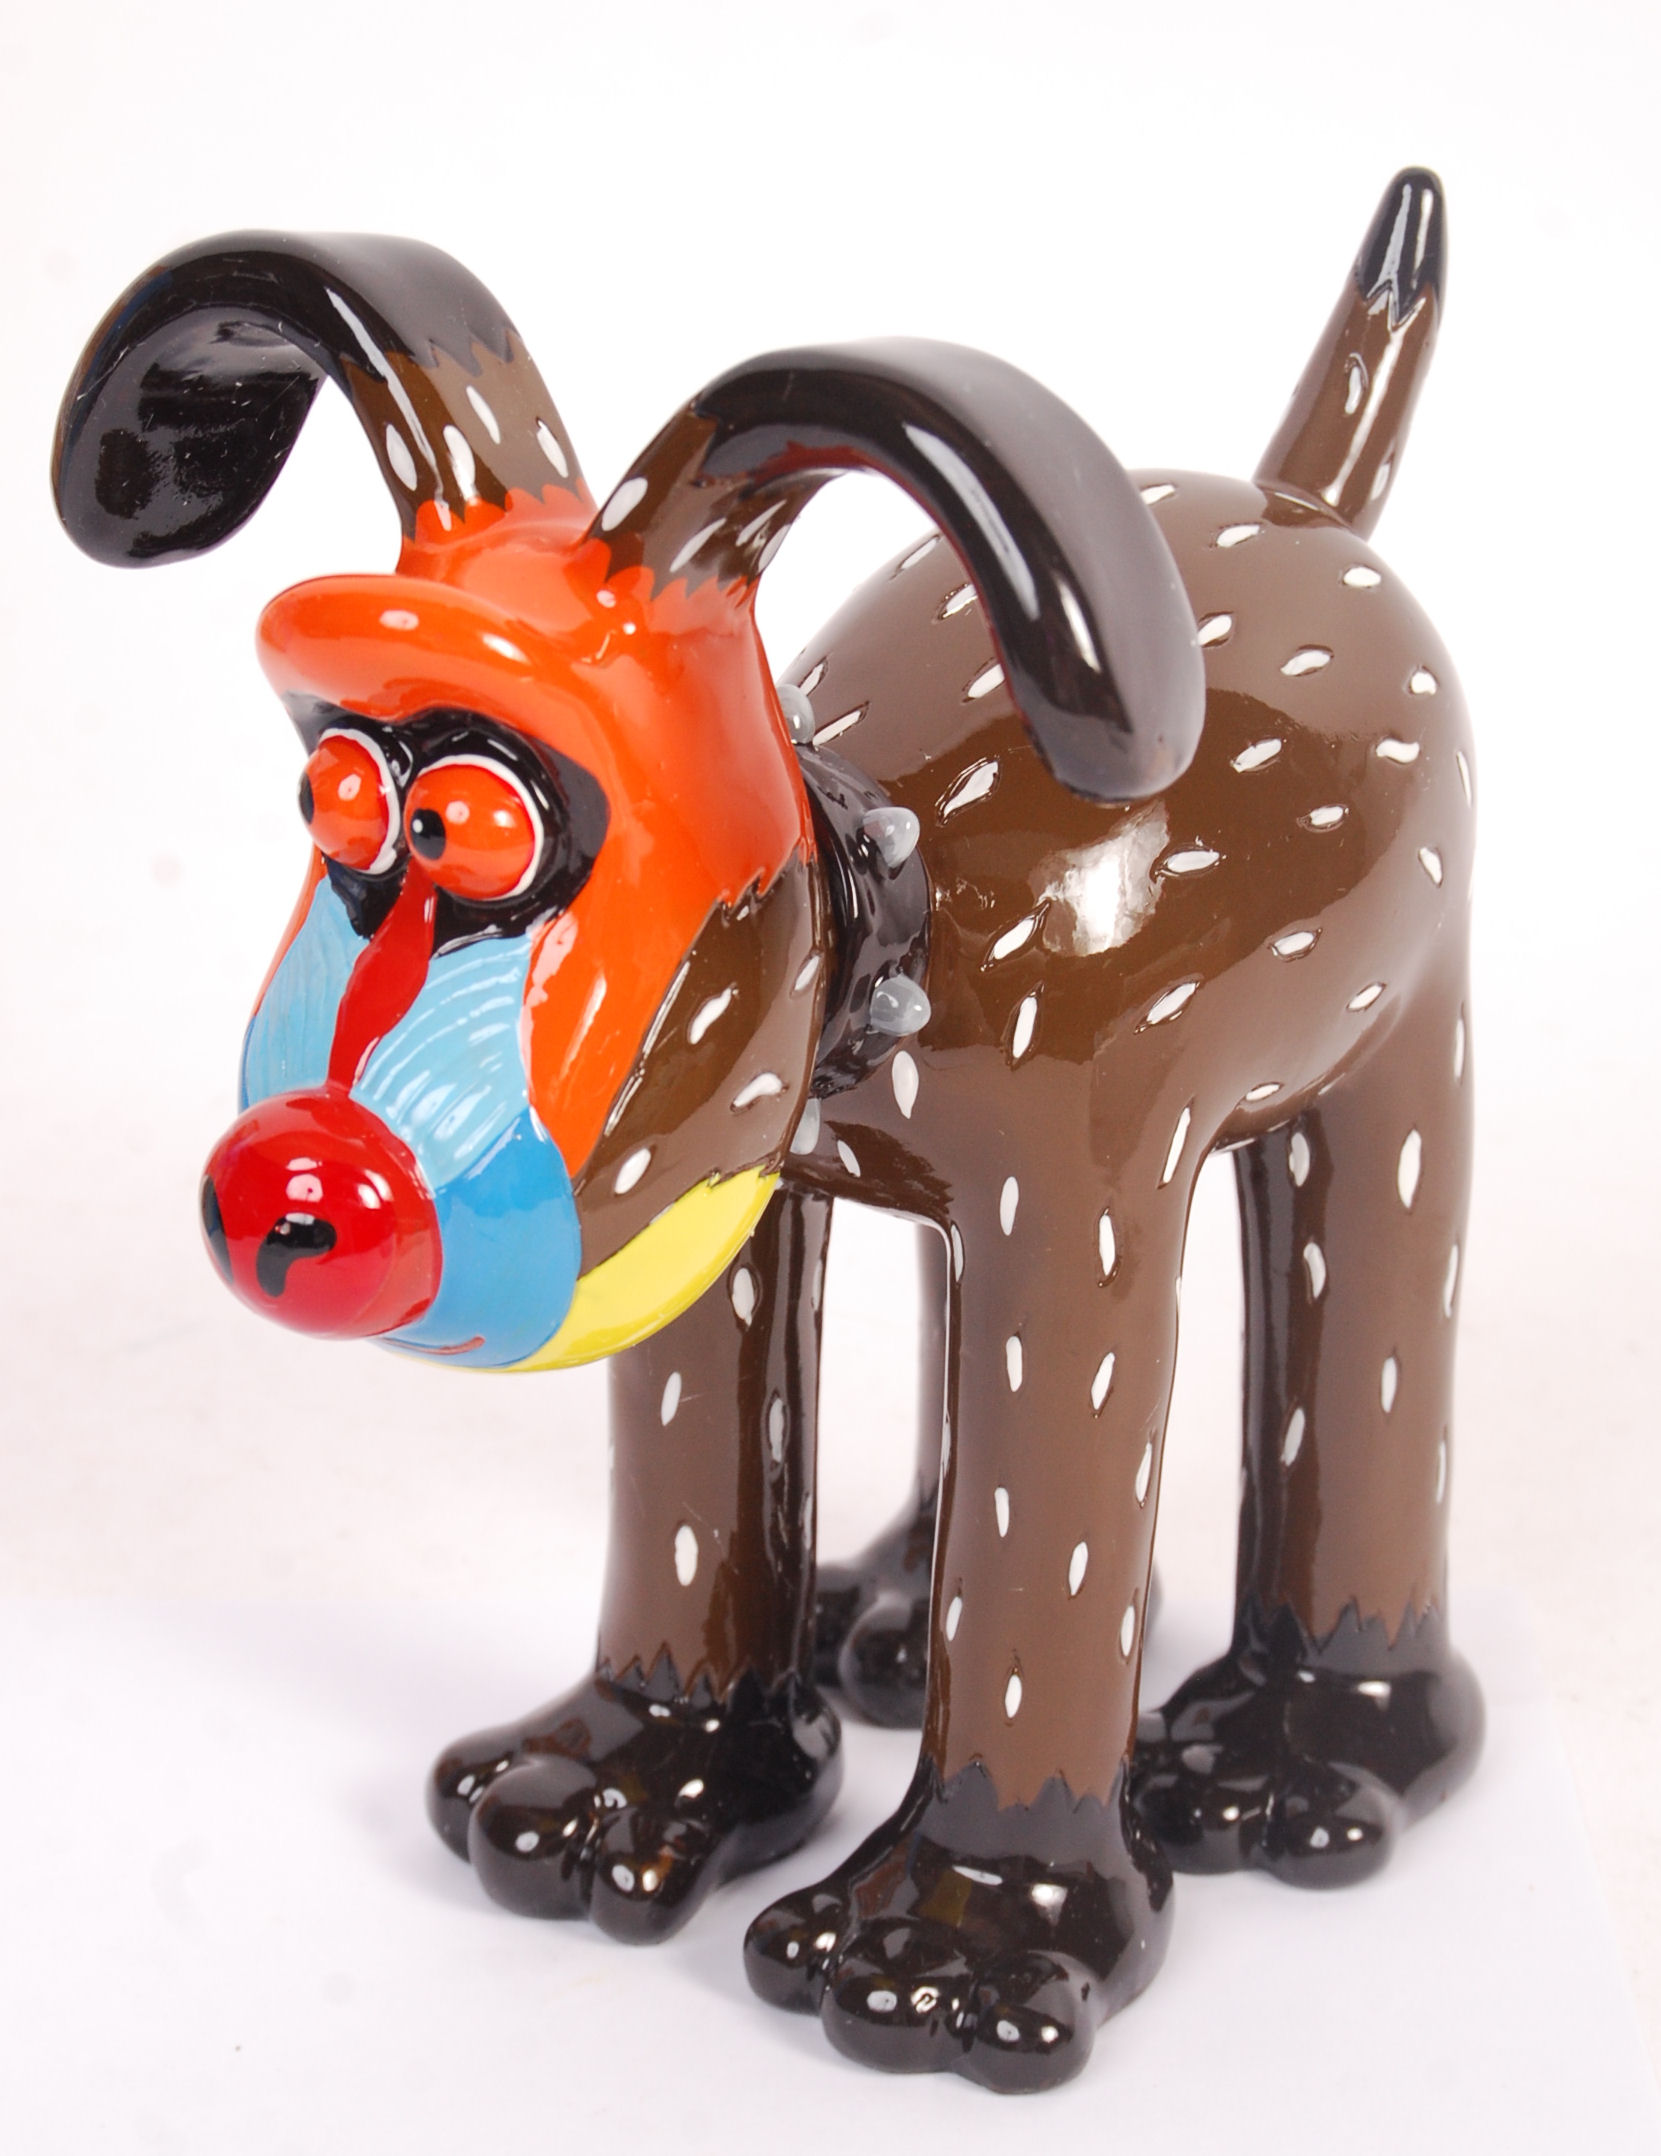 GROMIT UNLEASHED COLLECTABLE FIGURINE ' MANDRILLE' - Image 2 of 5